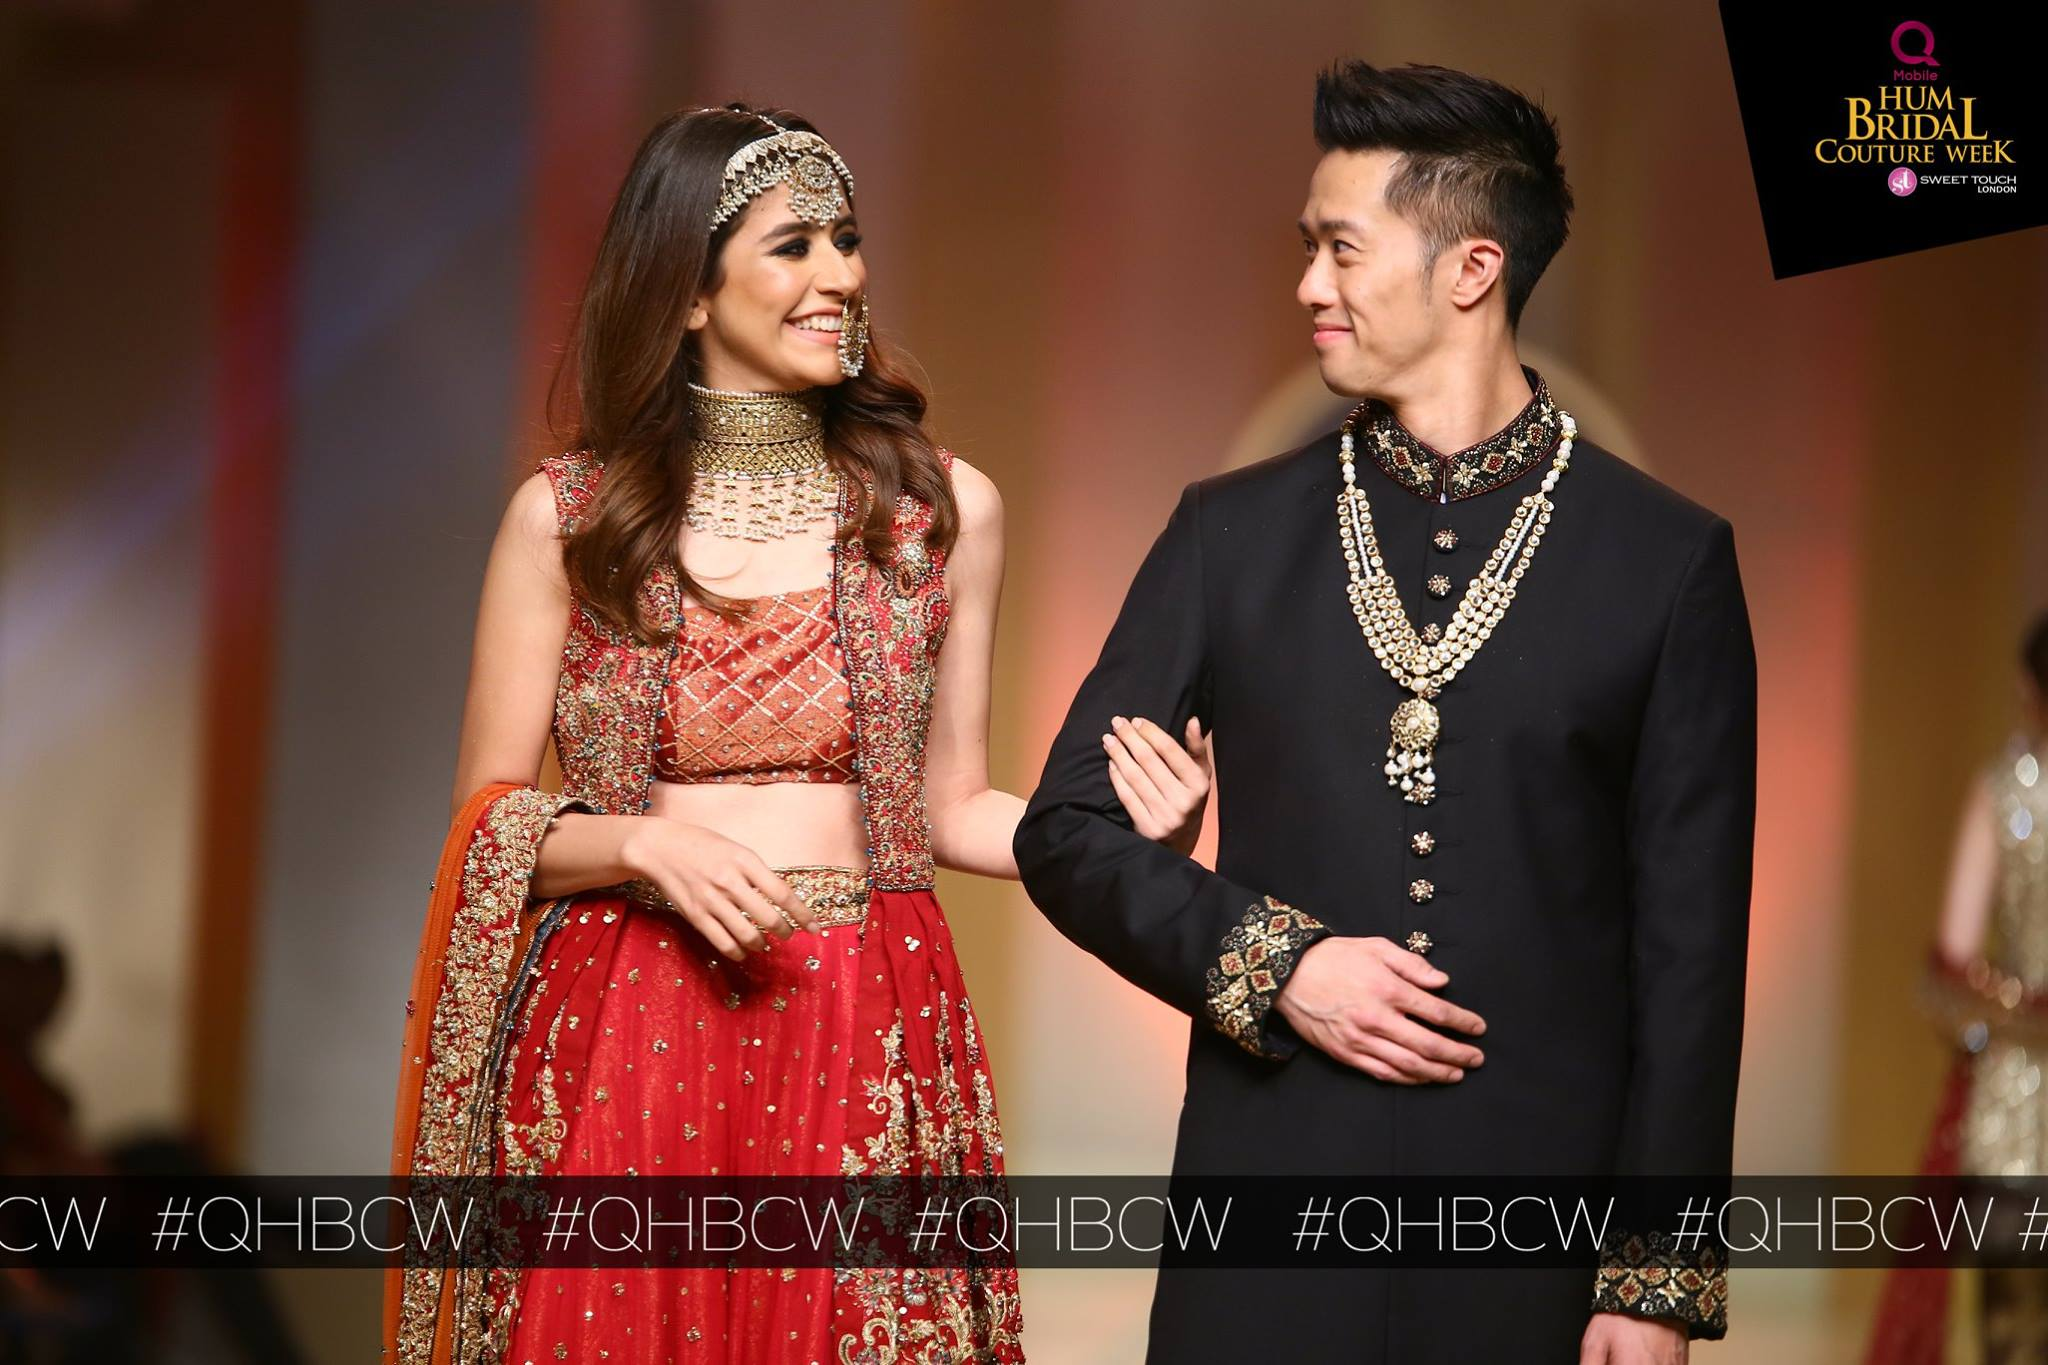 Uzama Baber- QMobile Hum Bridal Couture Week (5)